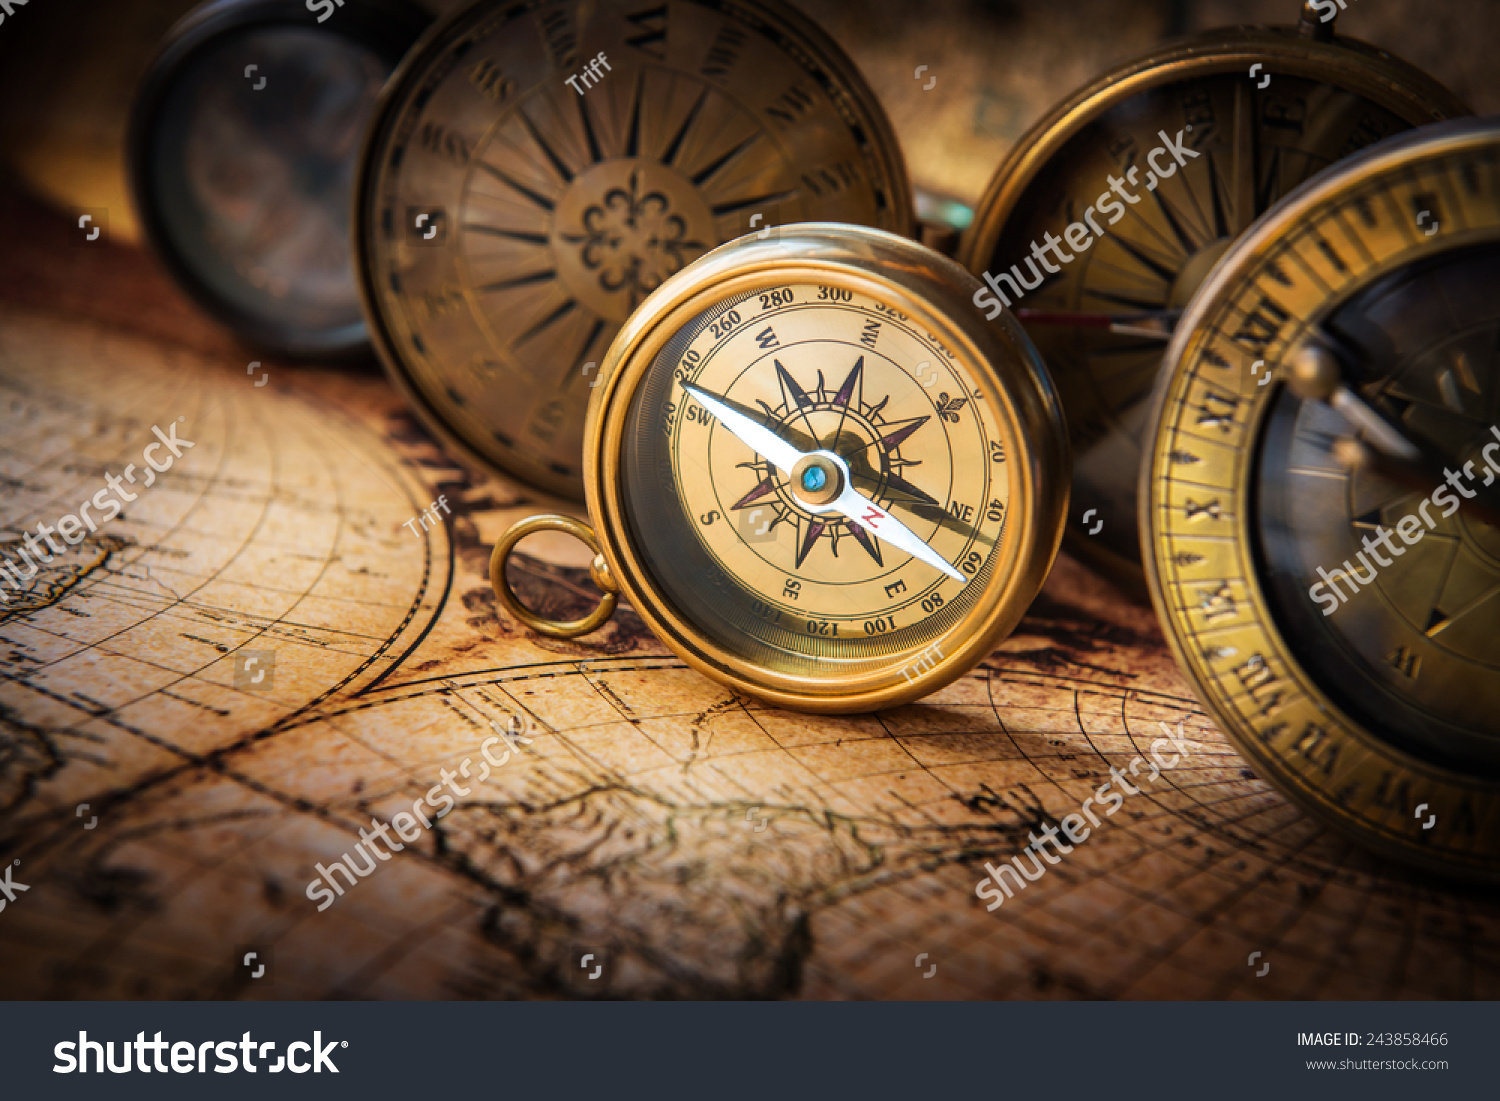 Old Compass On Vintage Map. Retro Stale. Stock Photo